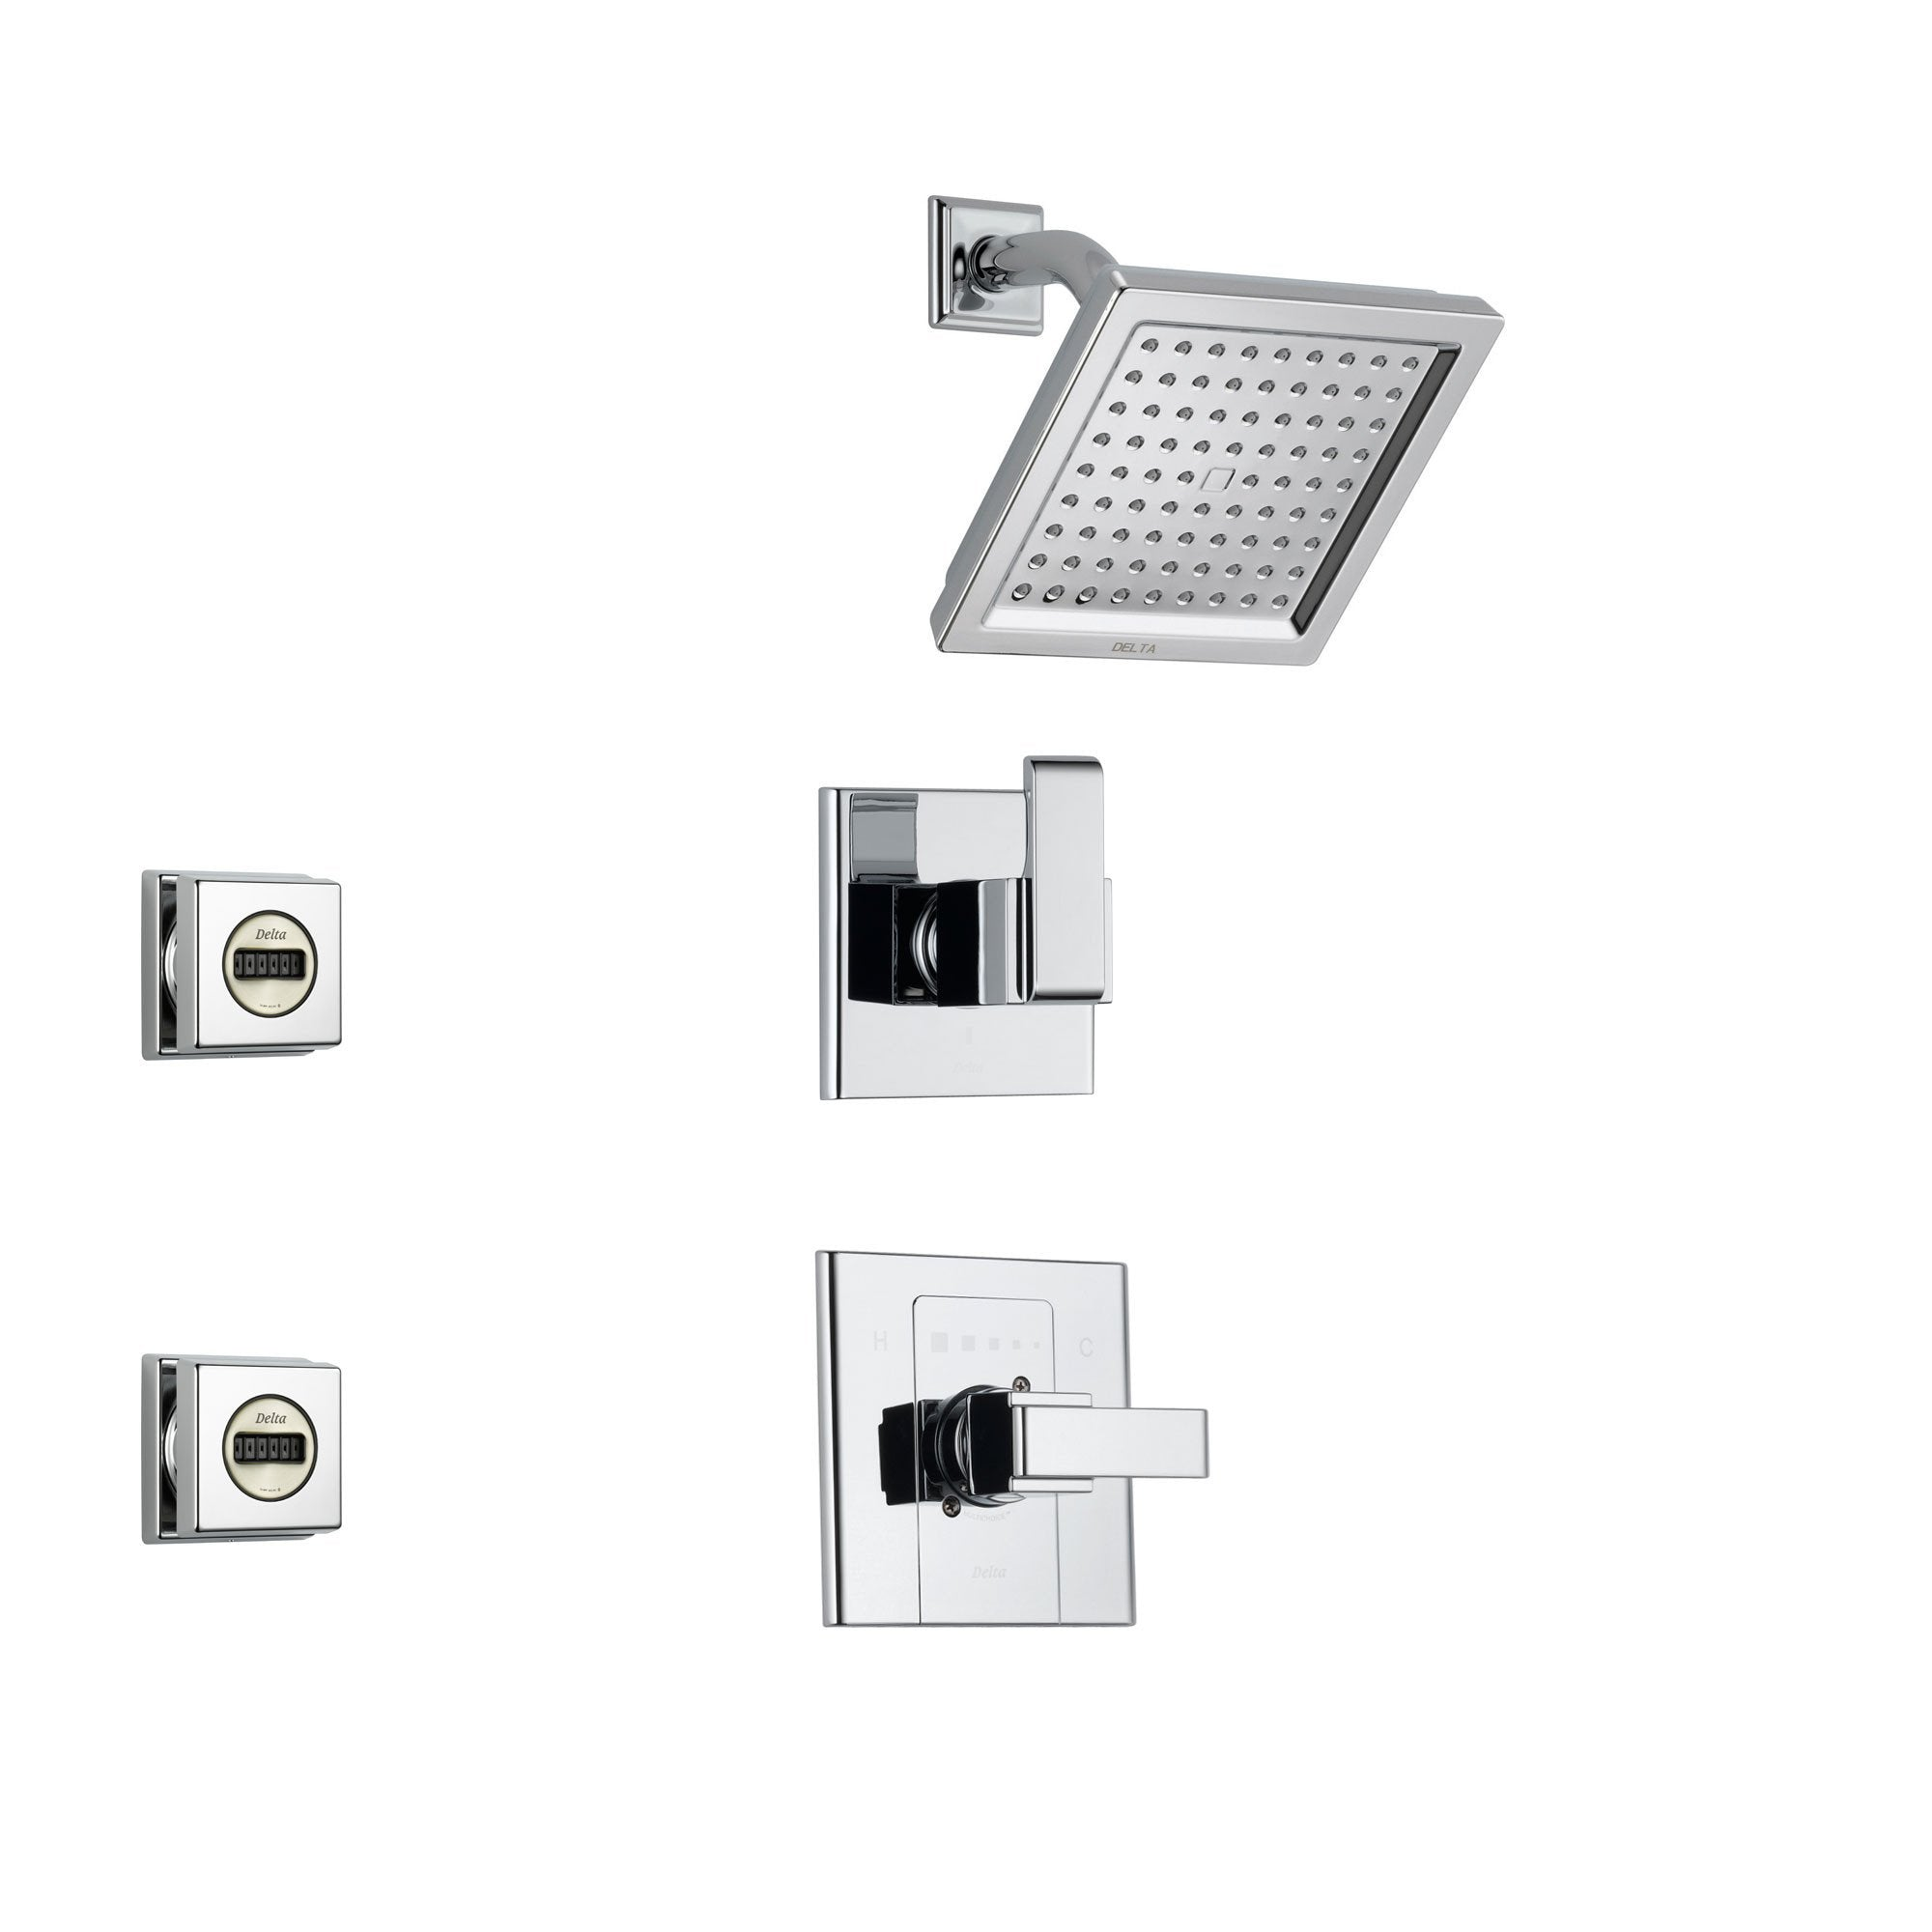 Delta Arzo Chrome Shower System with Normal Shower Handle, 3-setting Diverter, Modern Square Showerhead, and 2 Body Sprays SS148685